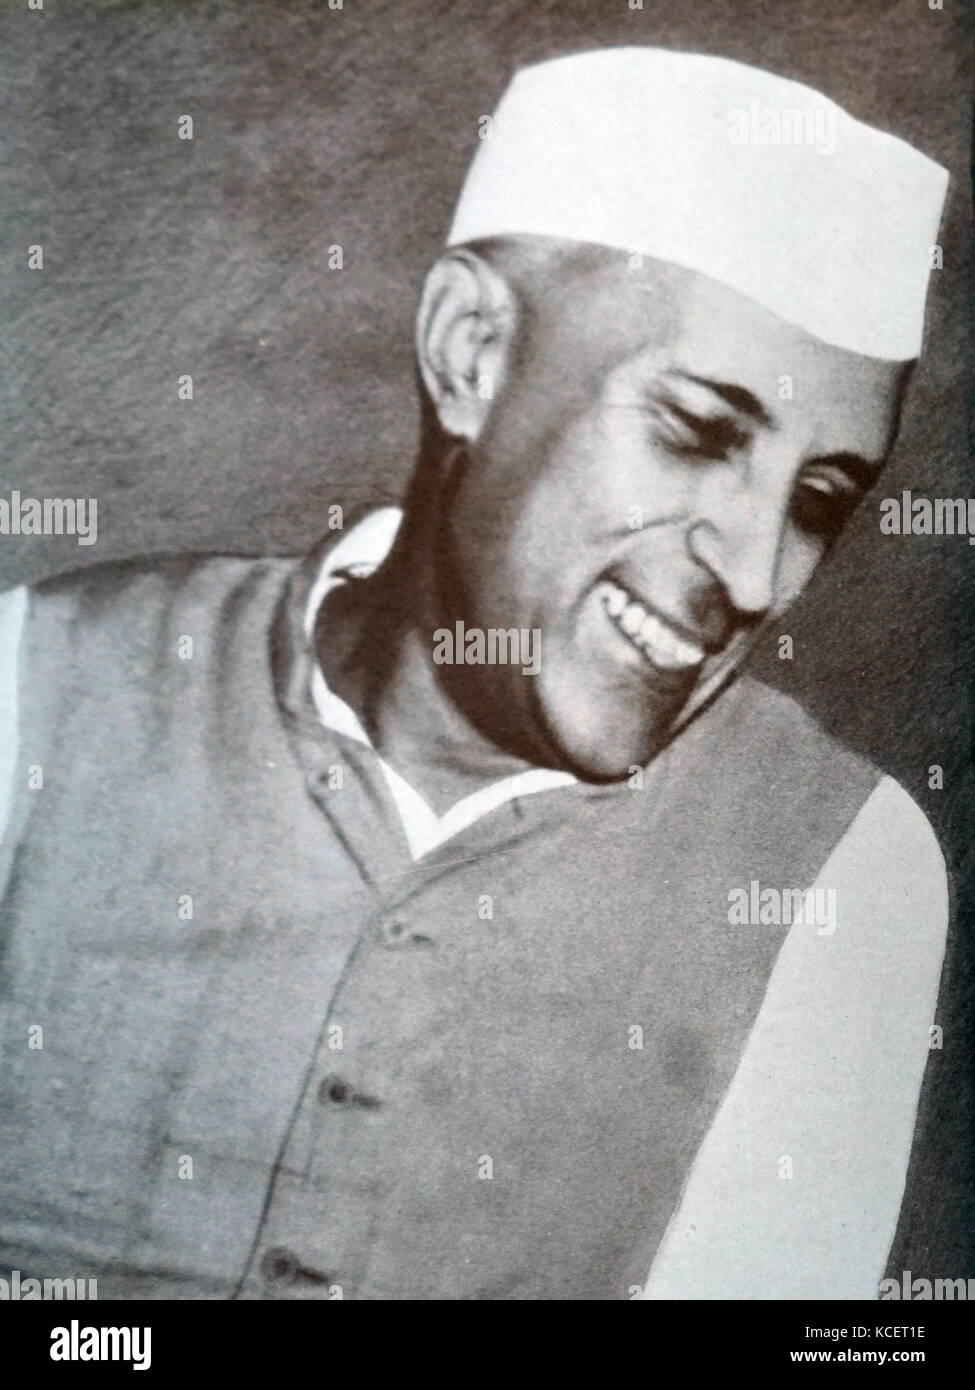 Jawaharlal Nehru (1889 – 1964) was the first Prime Minister of India - Stock Image